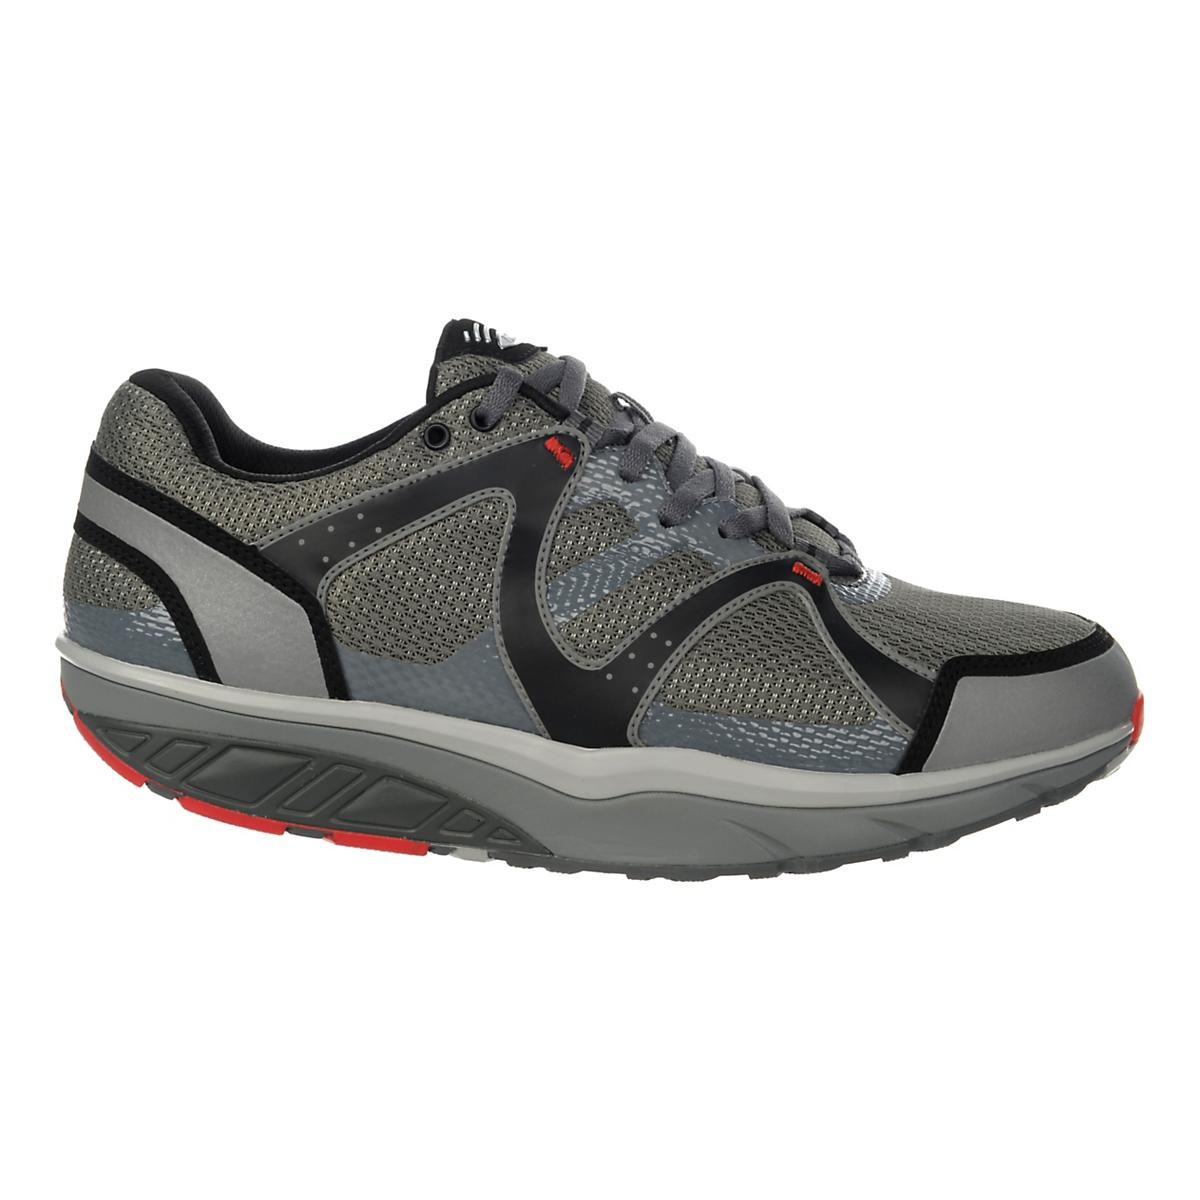 a994cc72d78c Mens MBT Sabra Trail 6 Lace Up Walking Shoe at Road Runner Sports